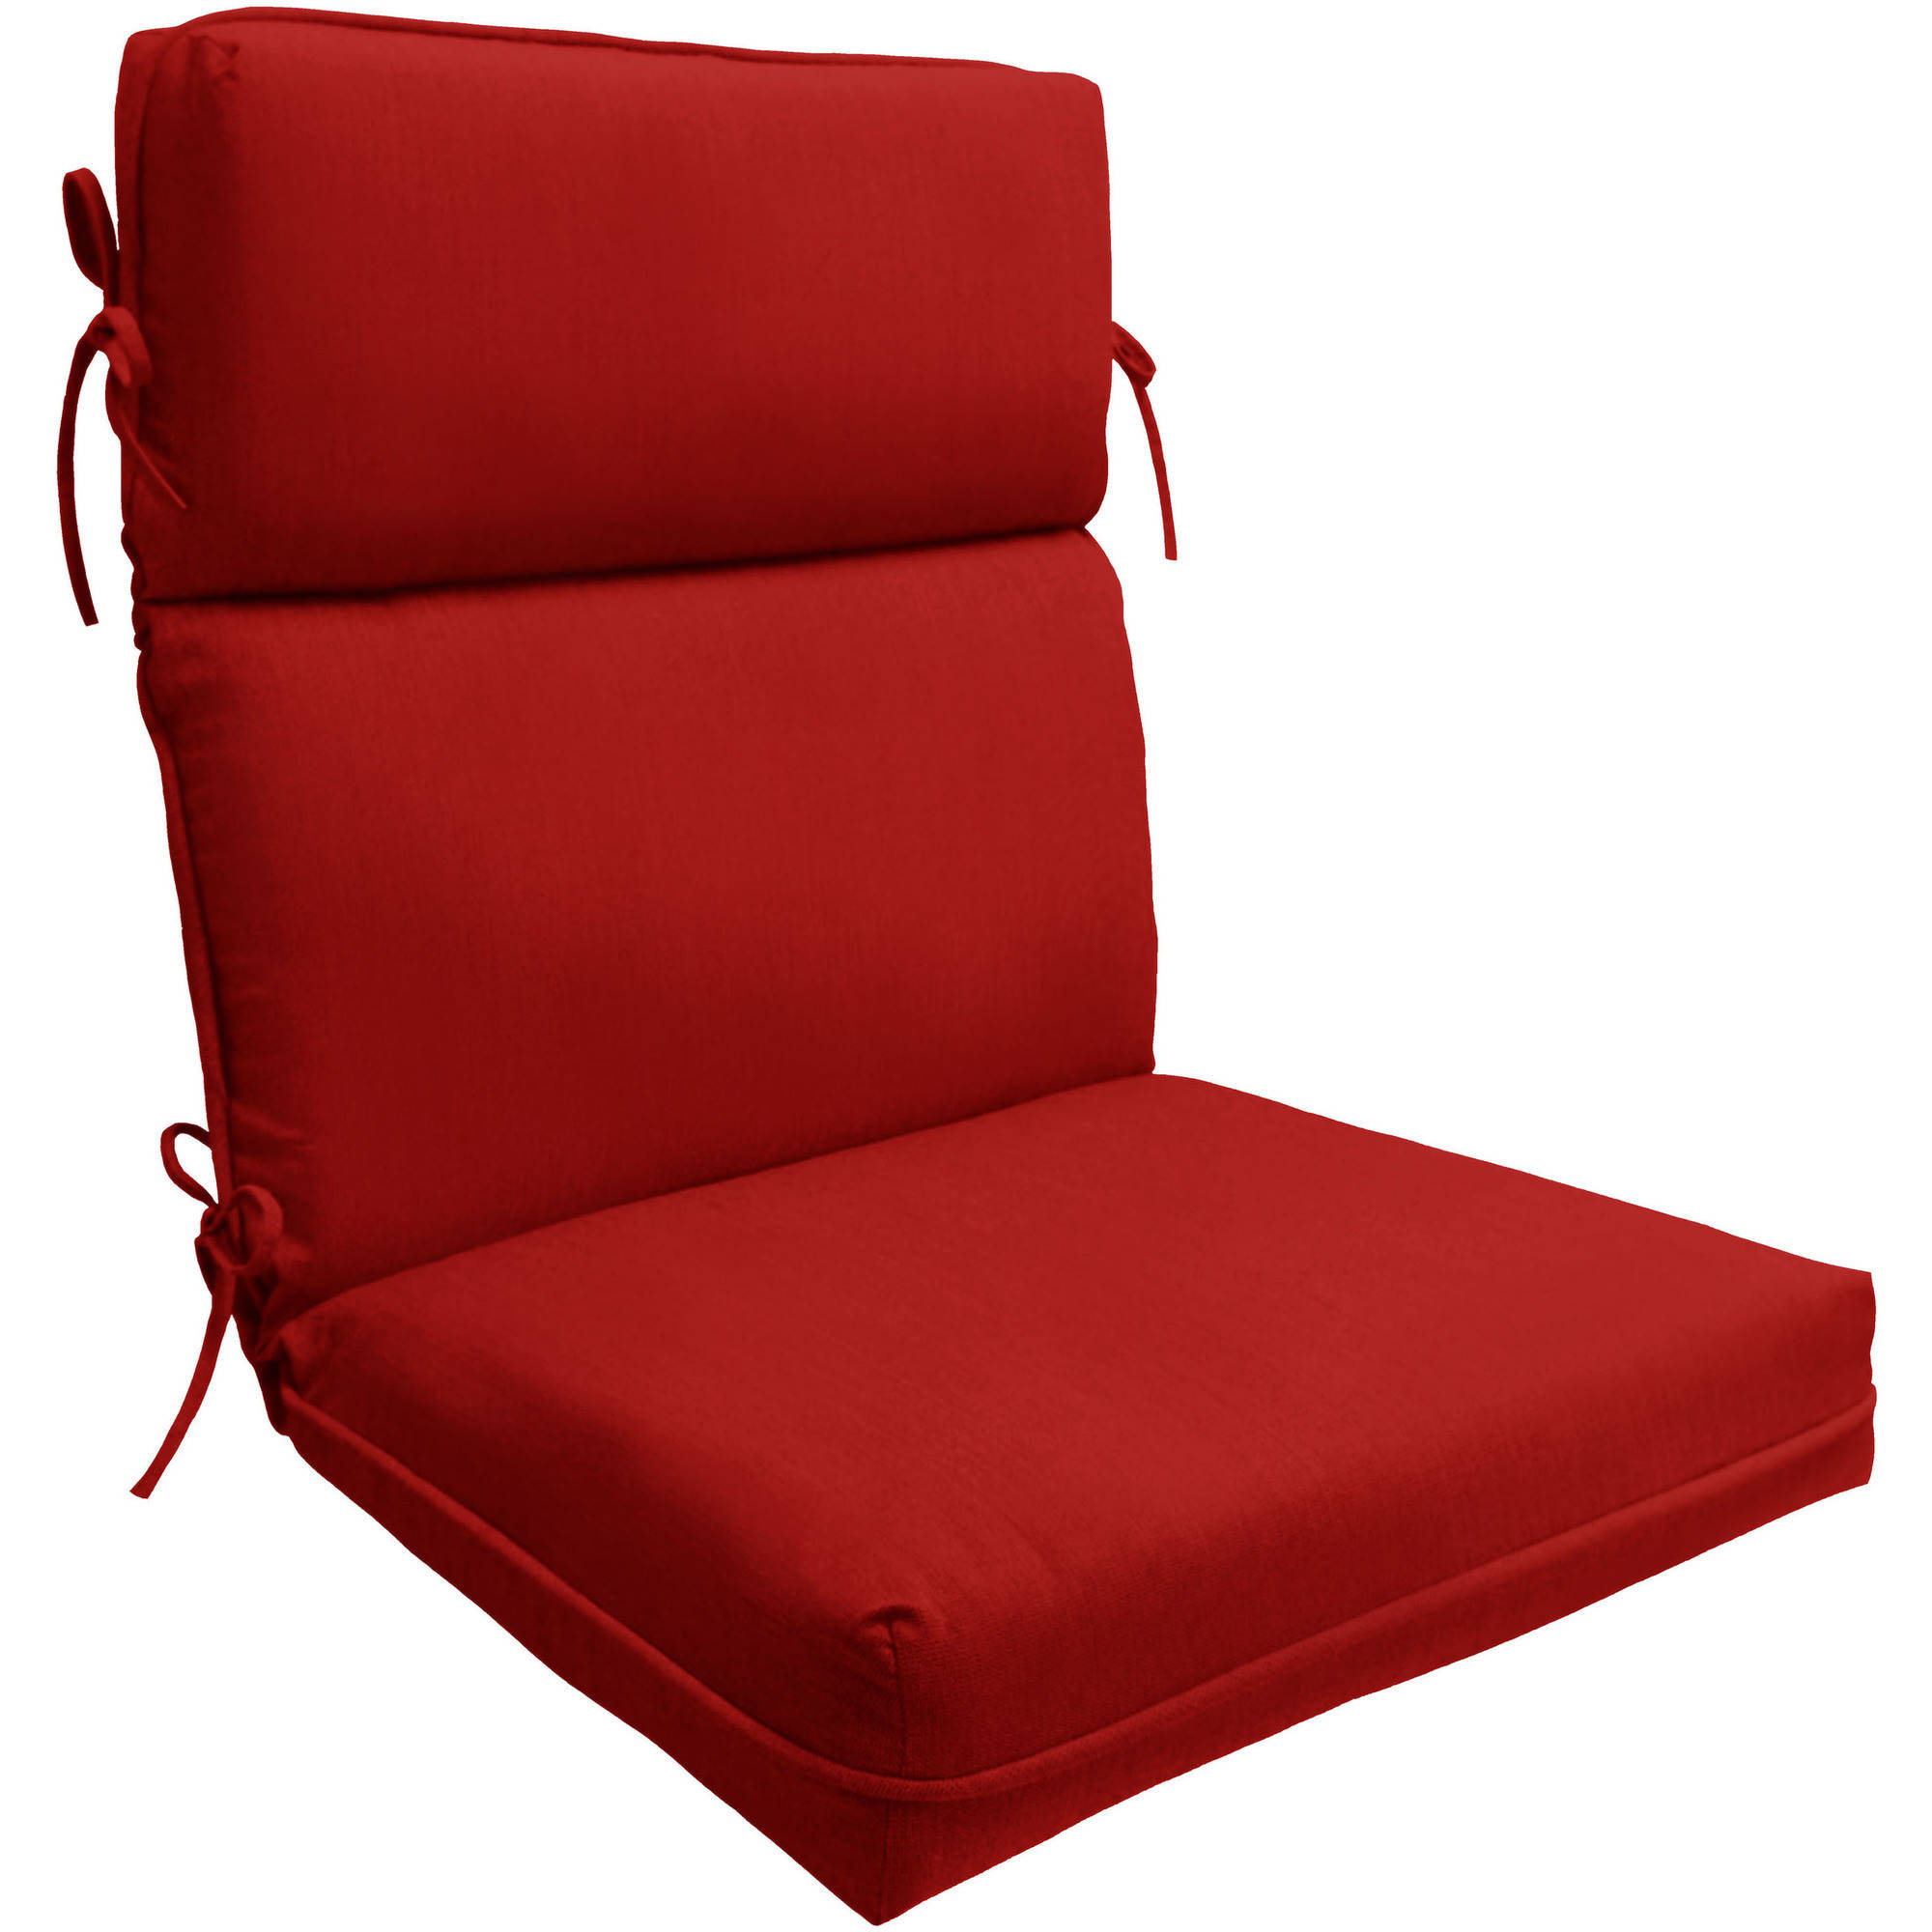 better homes and gardens sun valley 1 piece high back chair outdoor cushion red 21 x 44 x 4 75